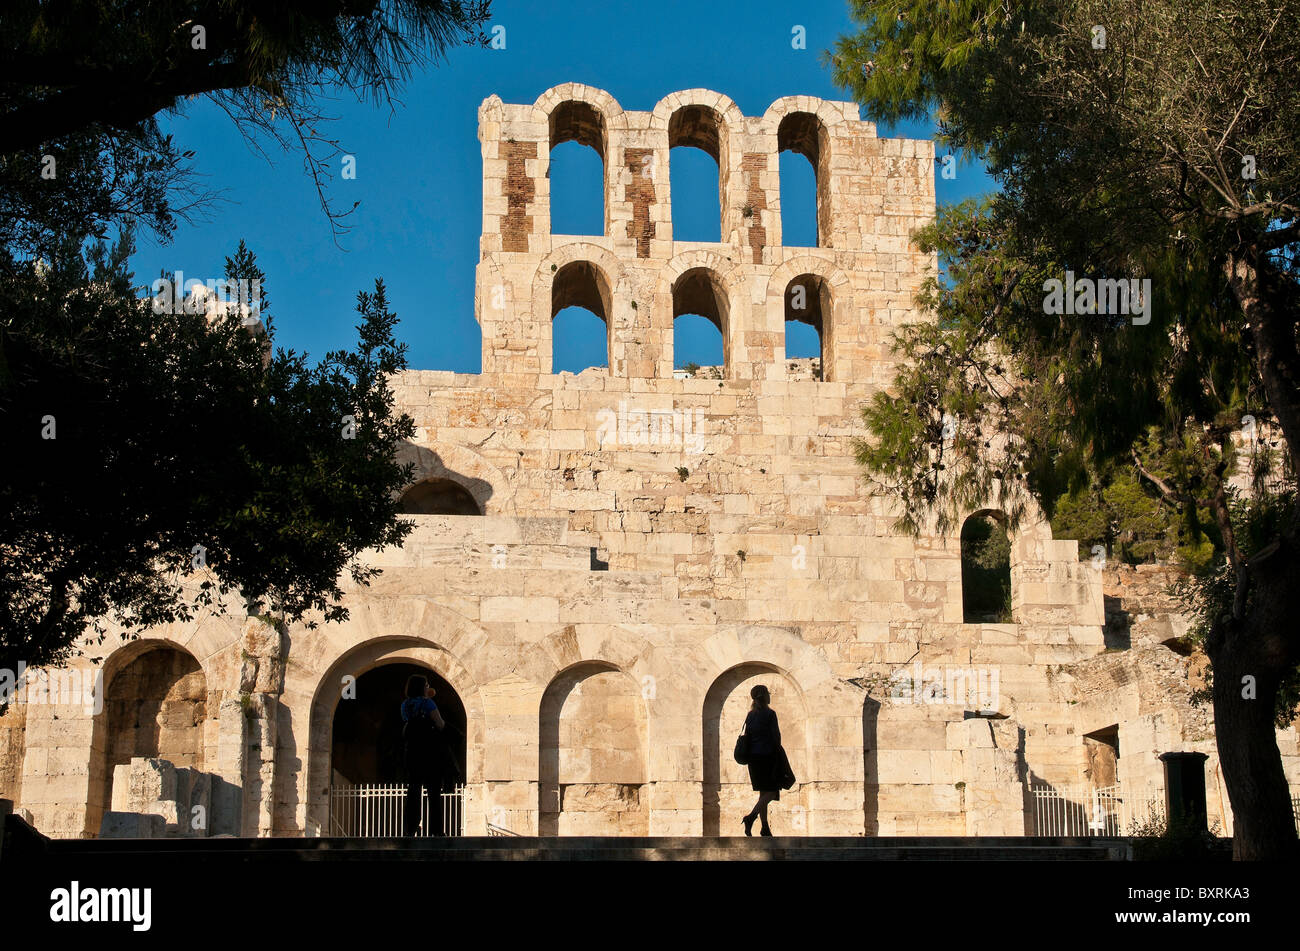 Odeon of Herodes Atticus, on the southern slopes of the Acropolis, Athens, Greece - Stock Image